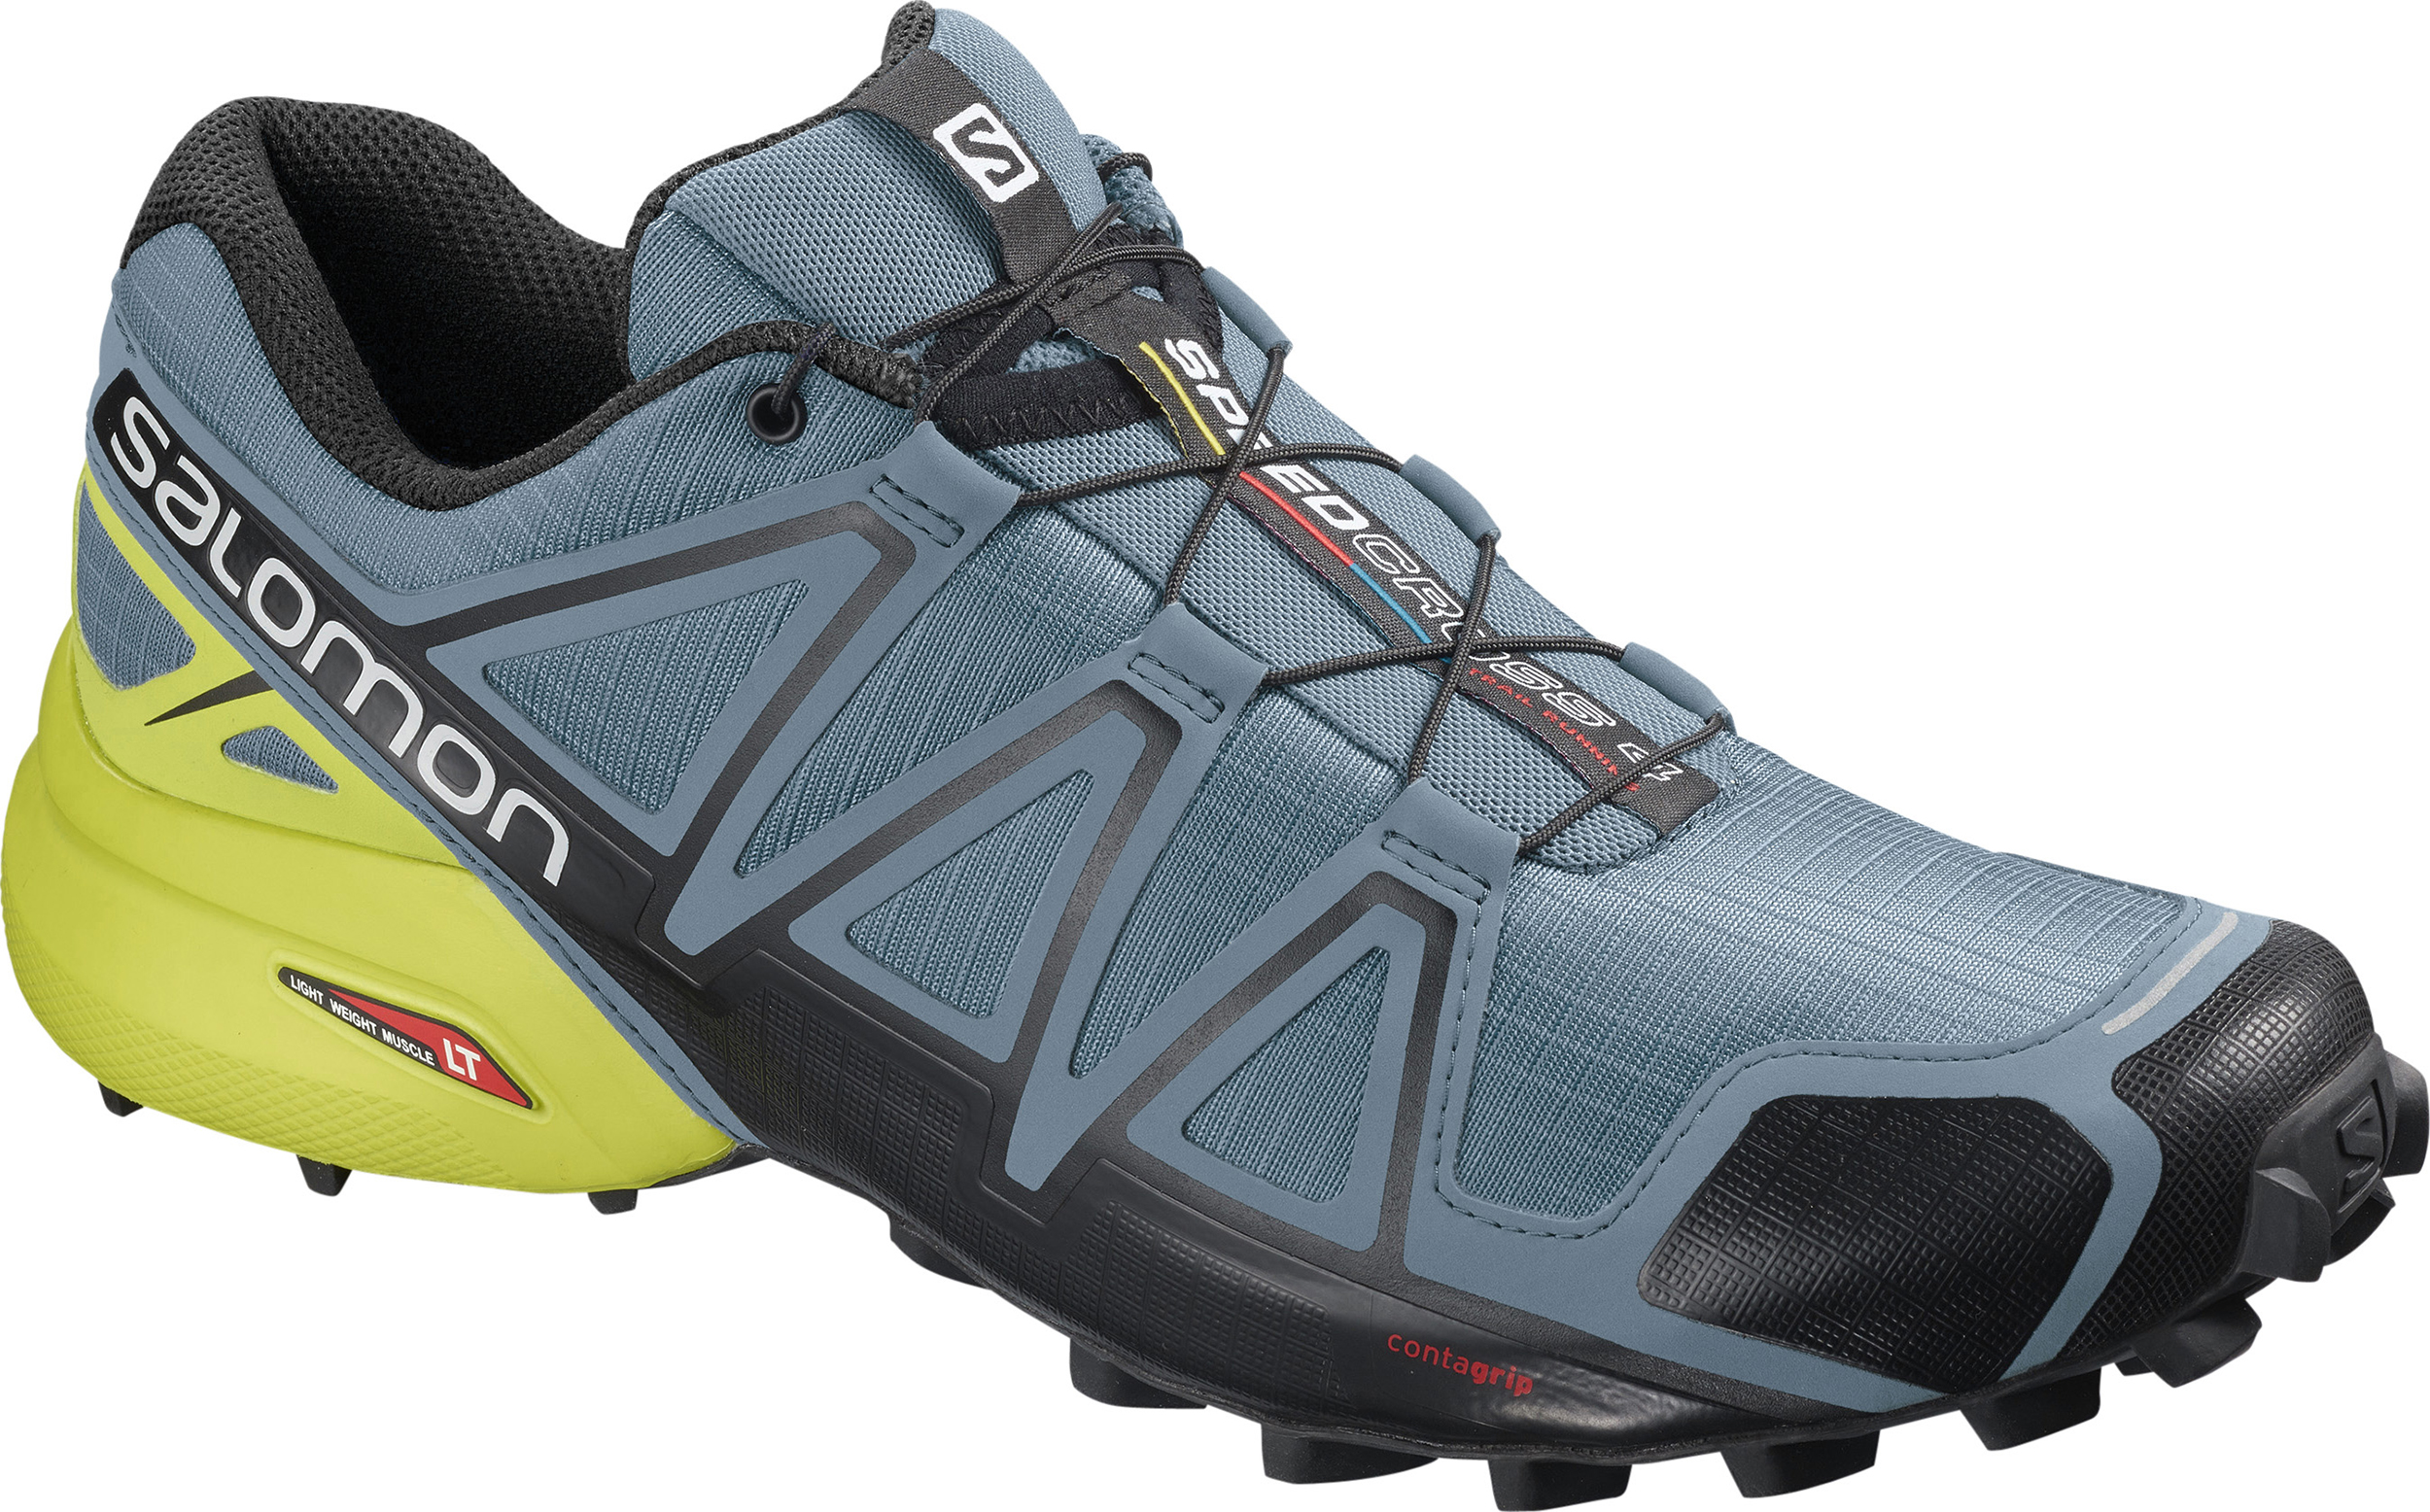 115bb9bb8b95 Salomon Speedcross 4 Trail Running Shoes - Men s